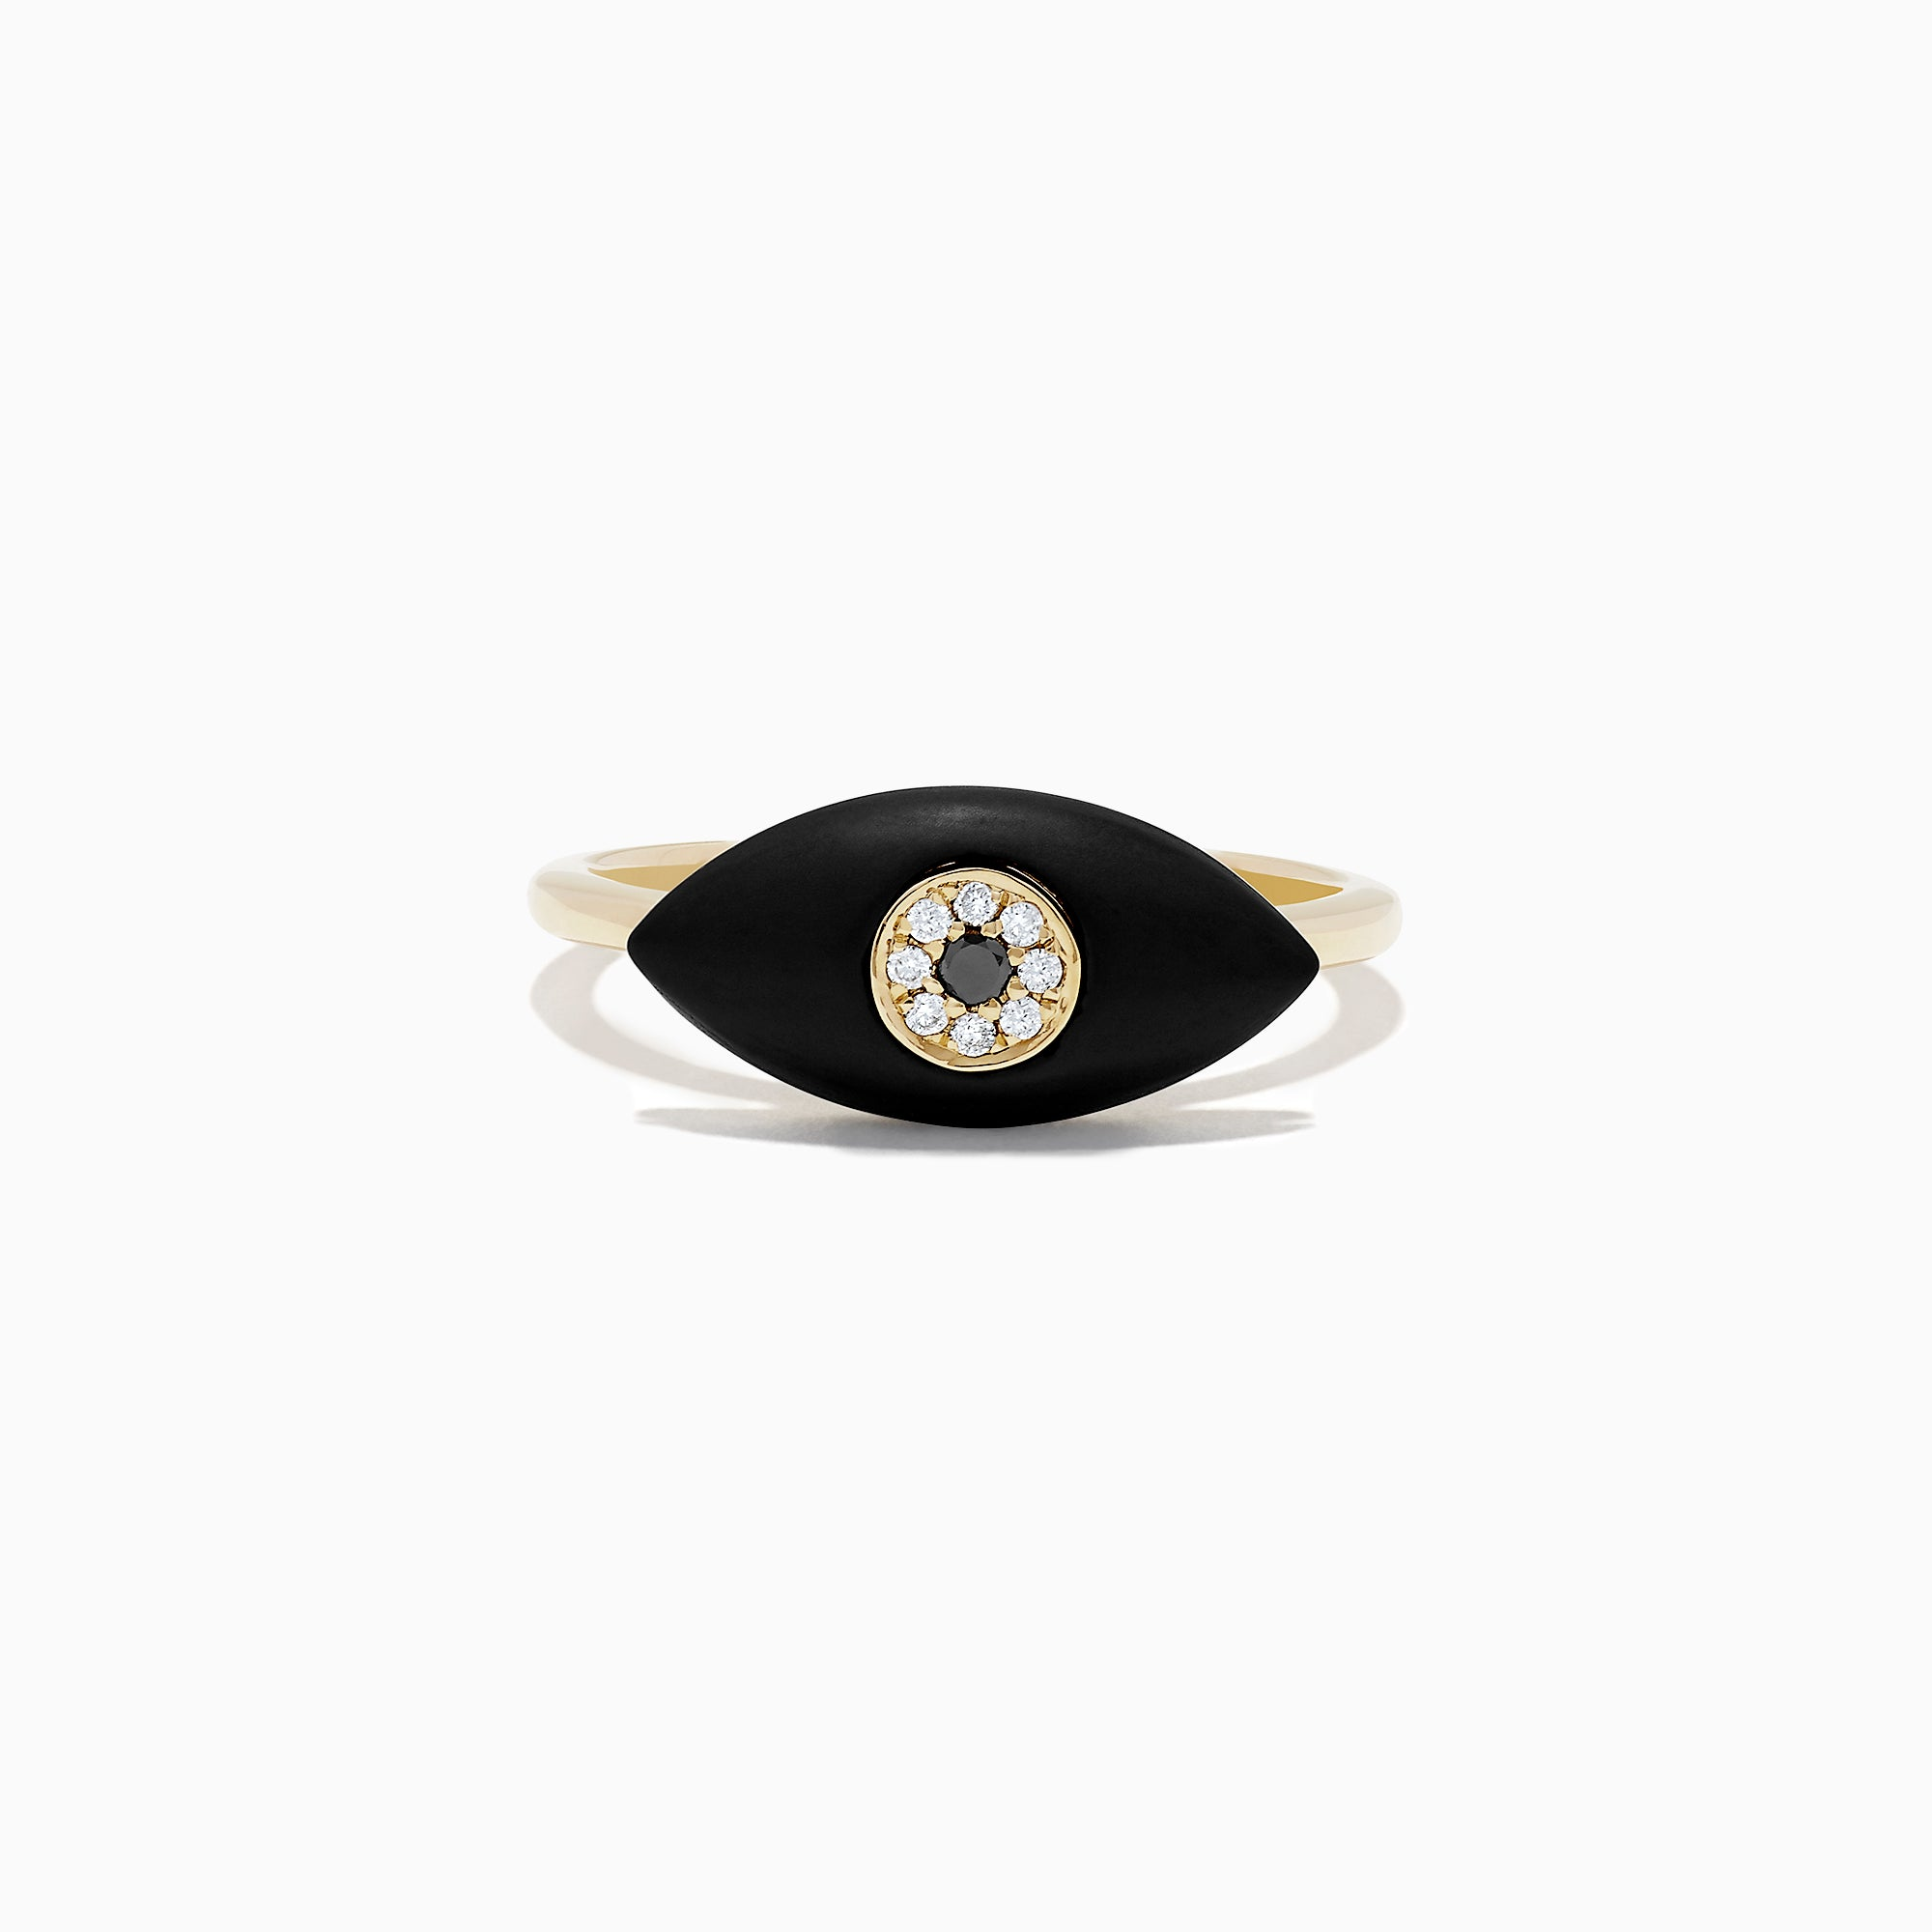 Effy Novelty 14K Yellow Gold Onyx and Diamond Evil Eye Ring, 1.25 TCW